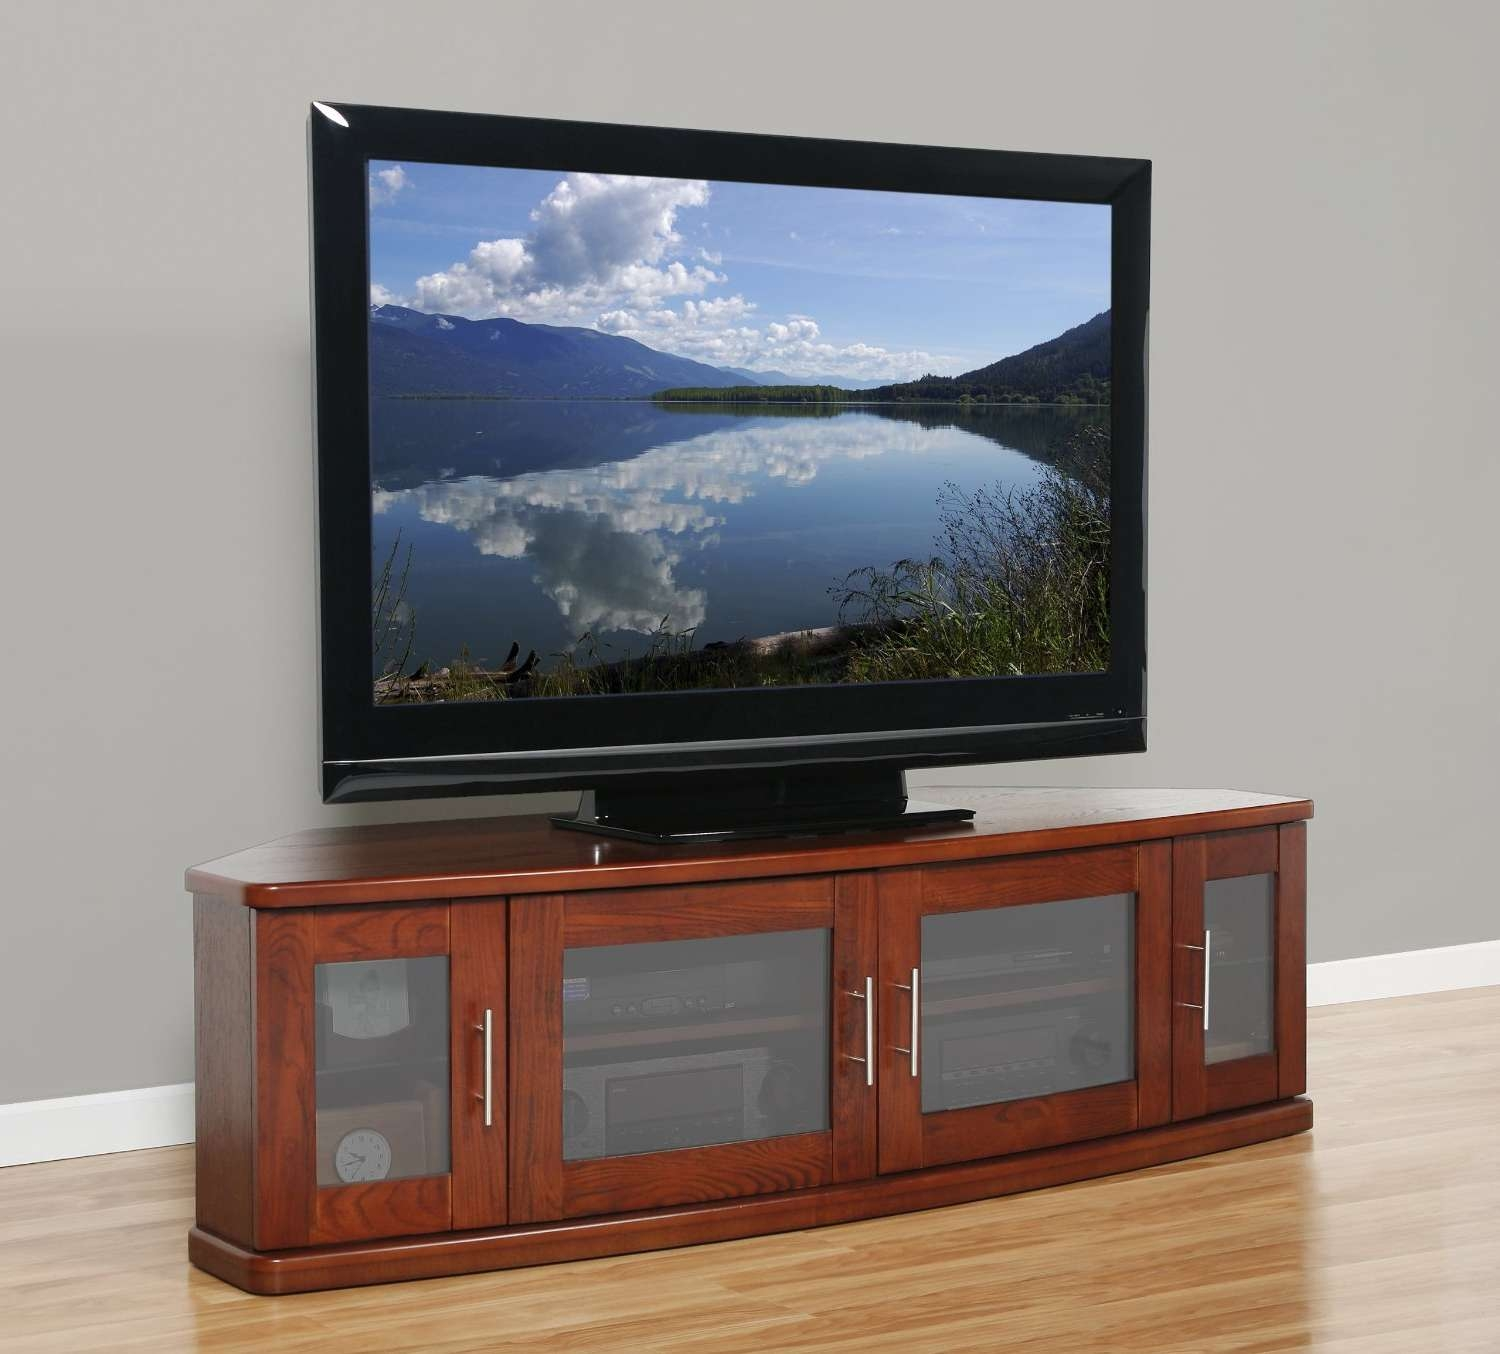 Home Designht Wood Tv Stands Buy Stand Today Save Sauder Harvest With Regard To Light Cherry Tv Stands (View 7 of 15)